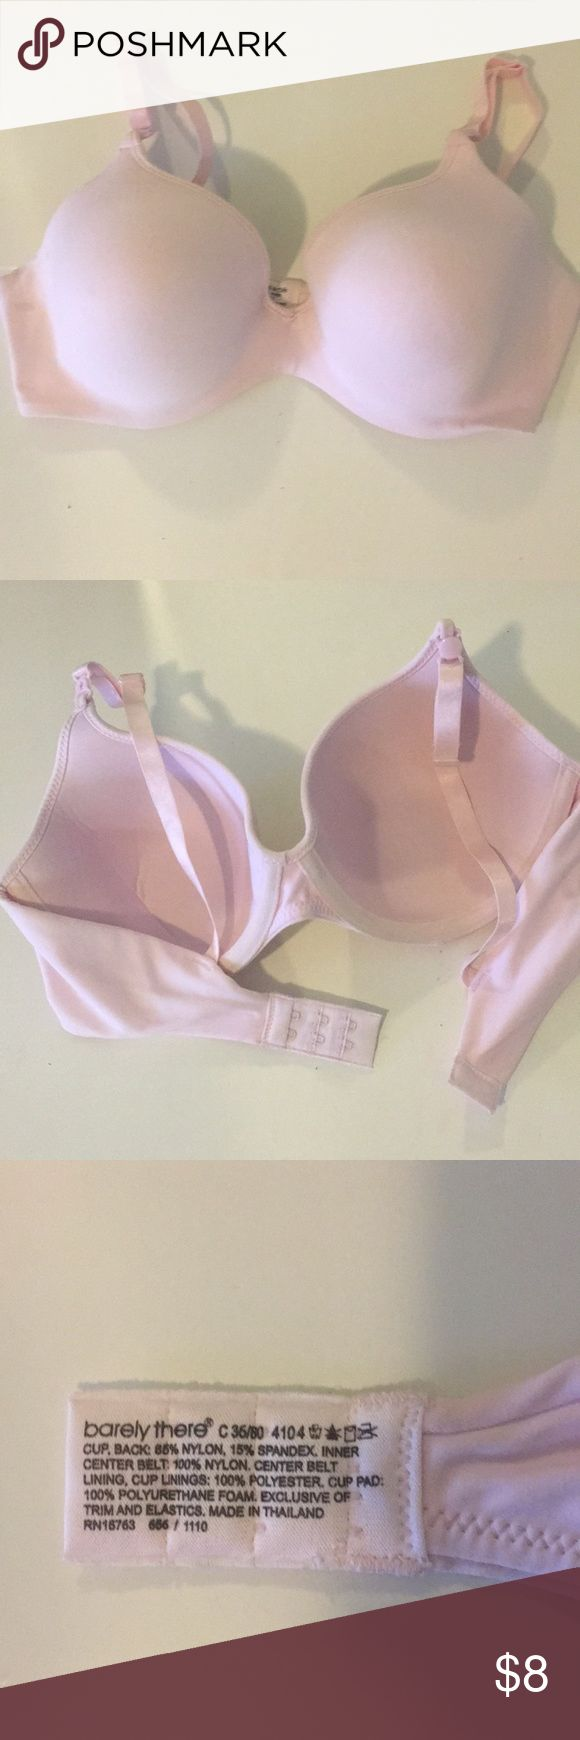 NWOT Baby pink bra Barely there baby pink bra 36C New with out tags Intimates & Sleepwear Bras